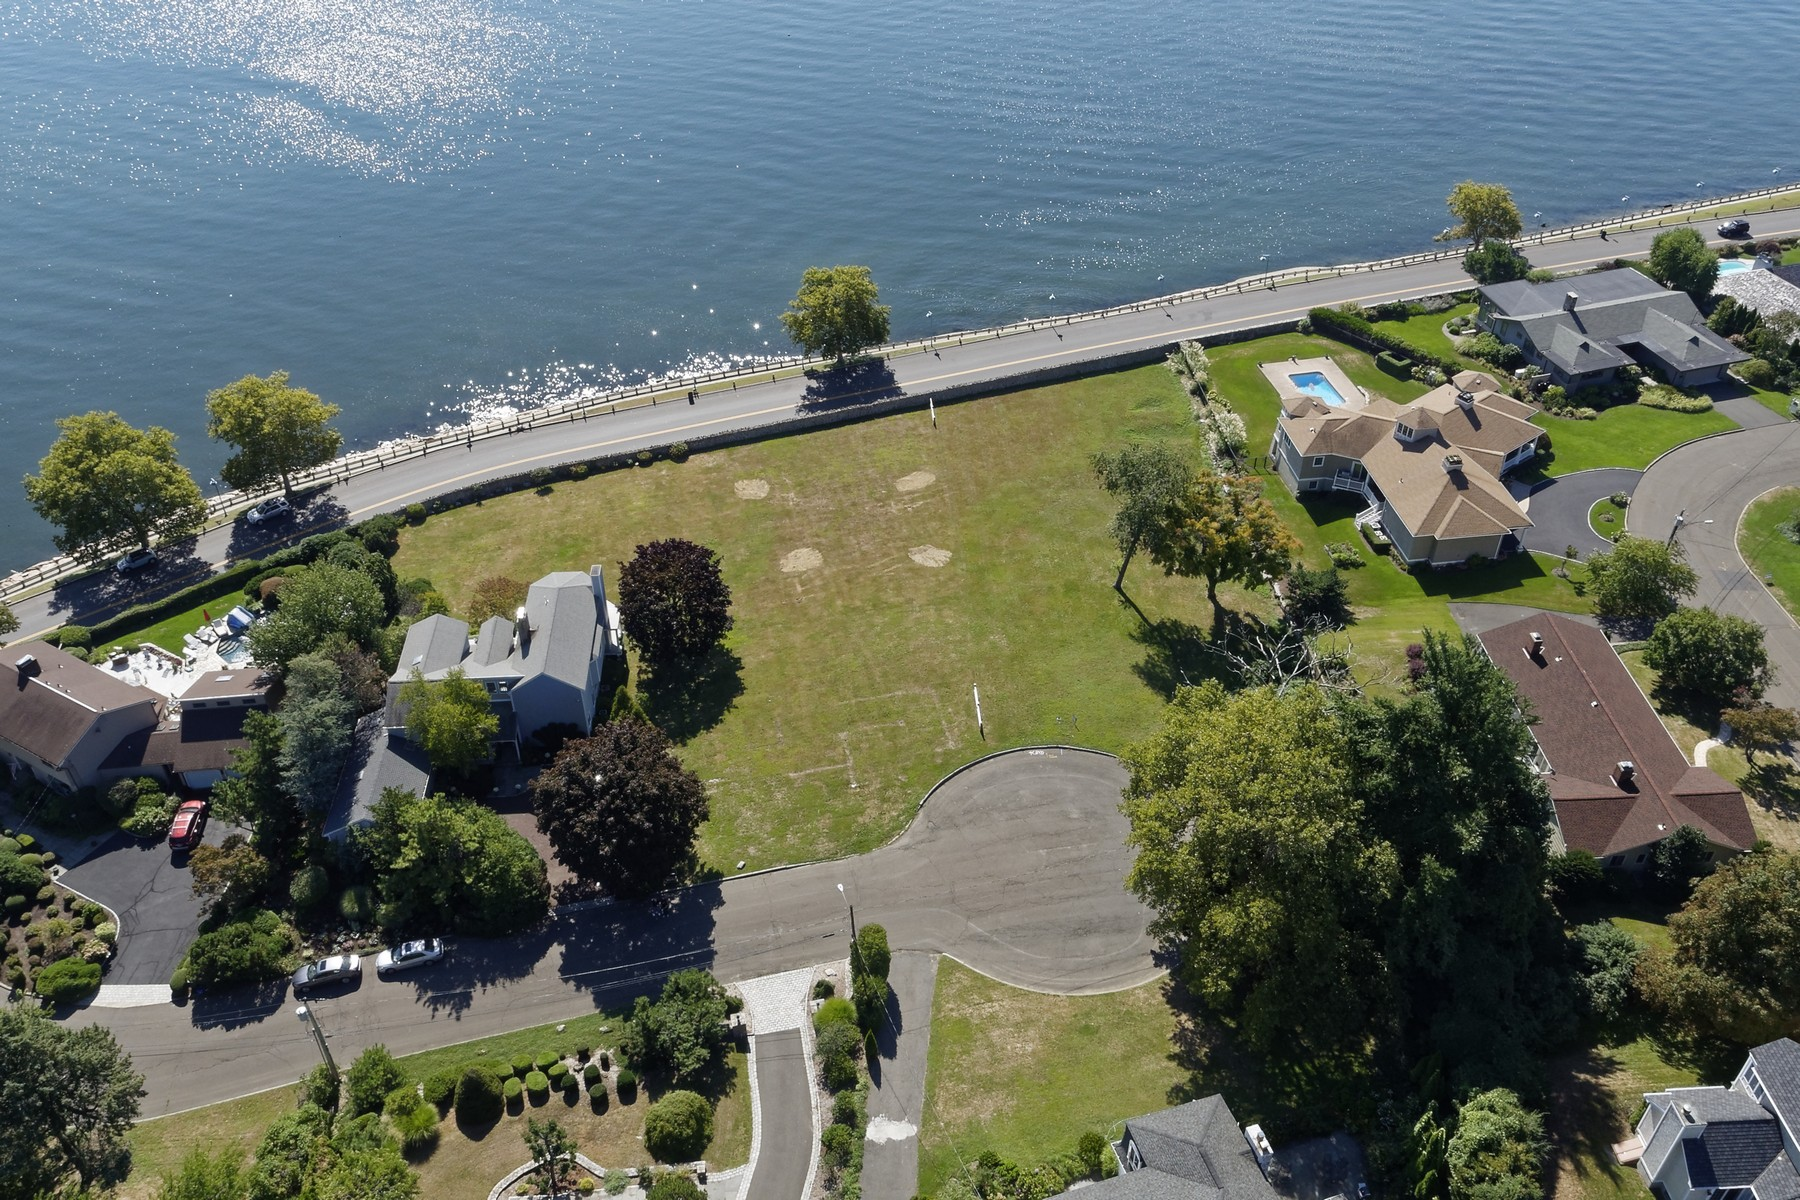 Terreno per Vendita alle ore Amazing Opportunity to Build Your Waterfront Dream Home in St. Mary's by the Sea 69 Armitage Drive Bridgeport, Connecticut 06605 Stati Uniti